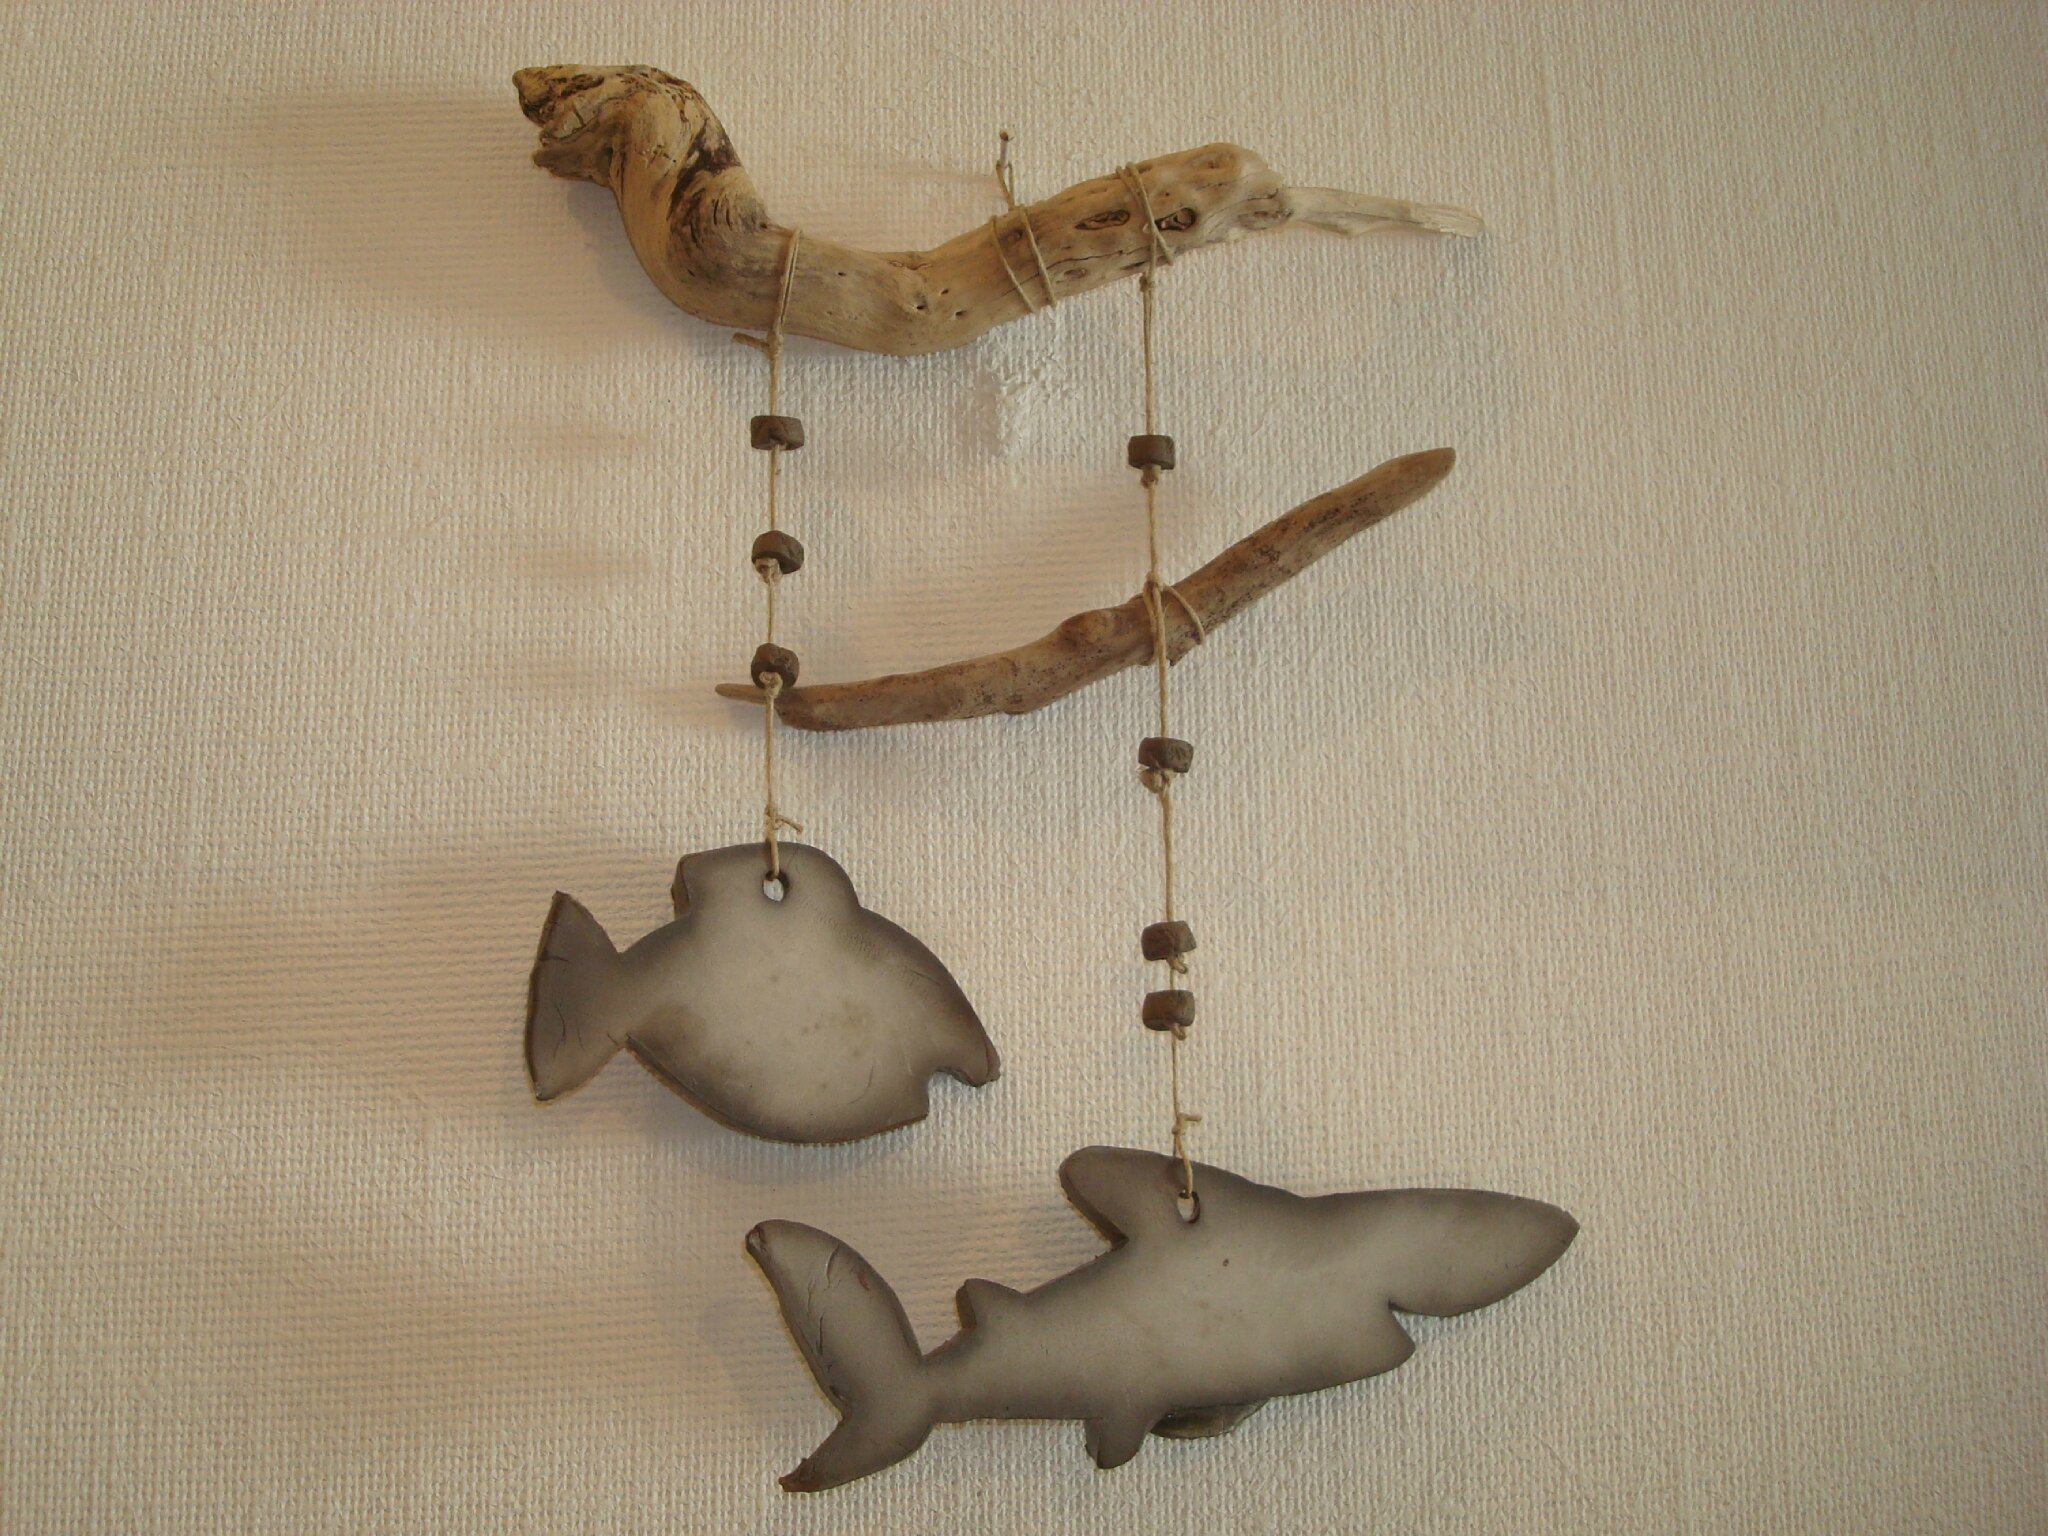 Suspension murale poisson et requin raku bois flott for Suspension en bois flotte